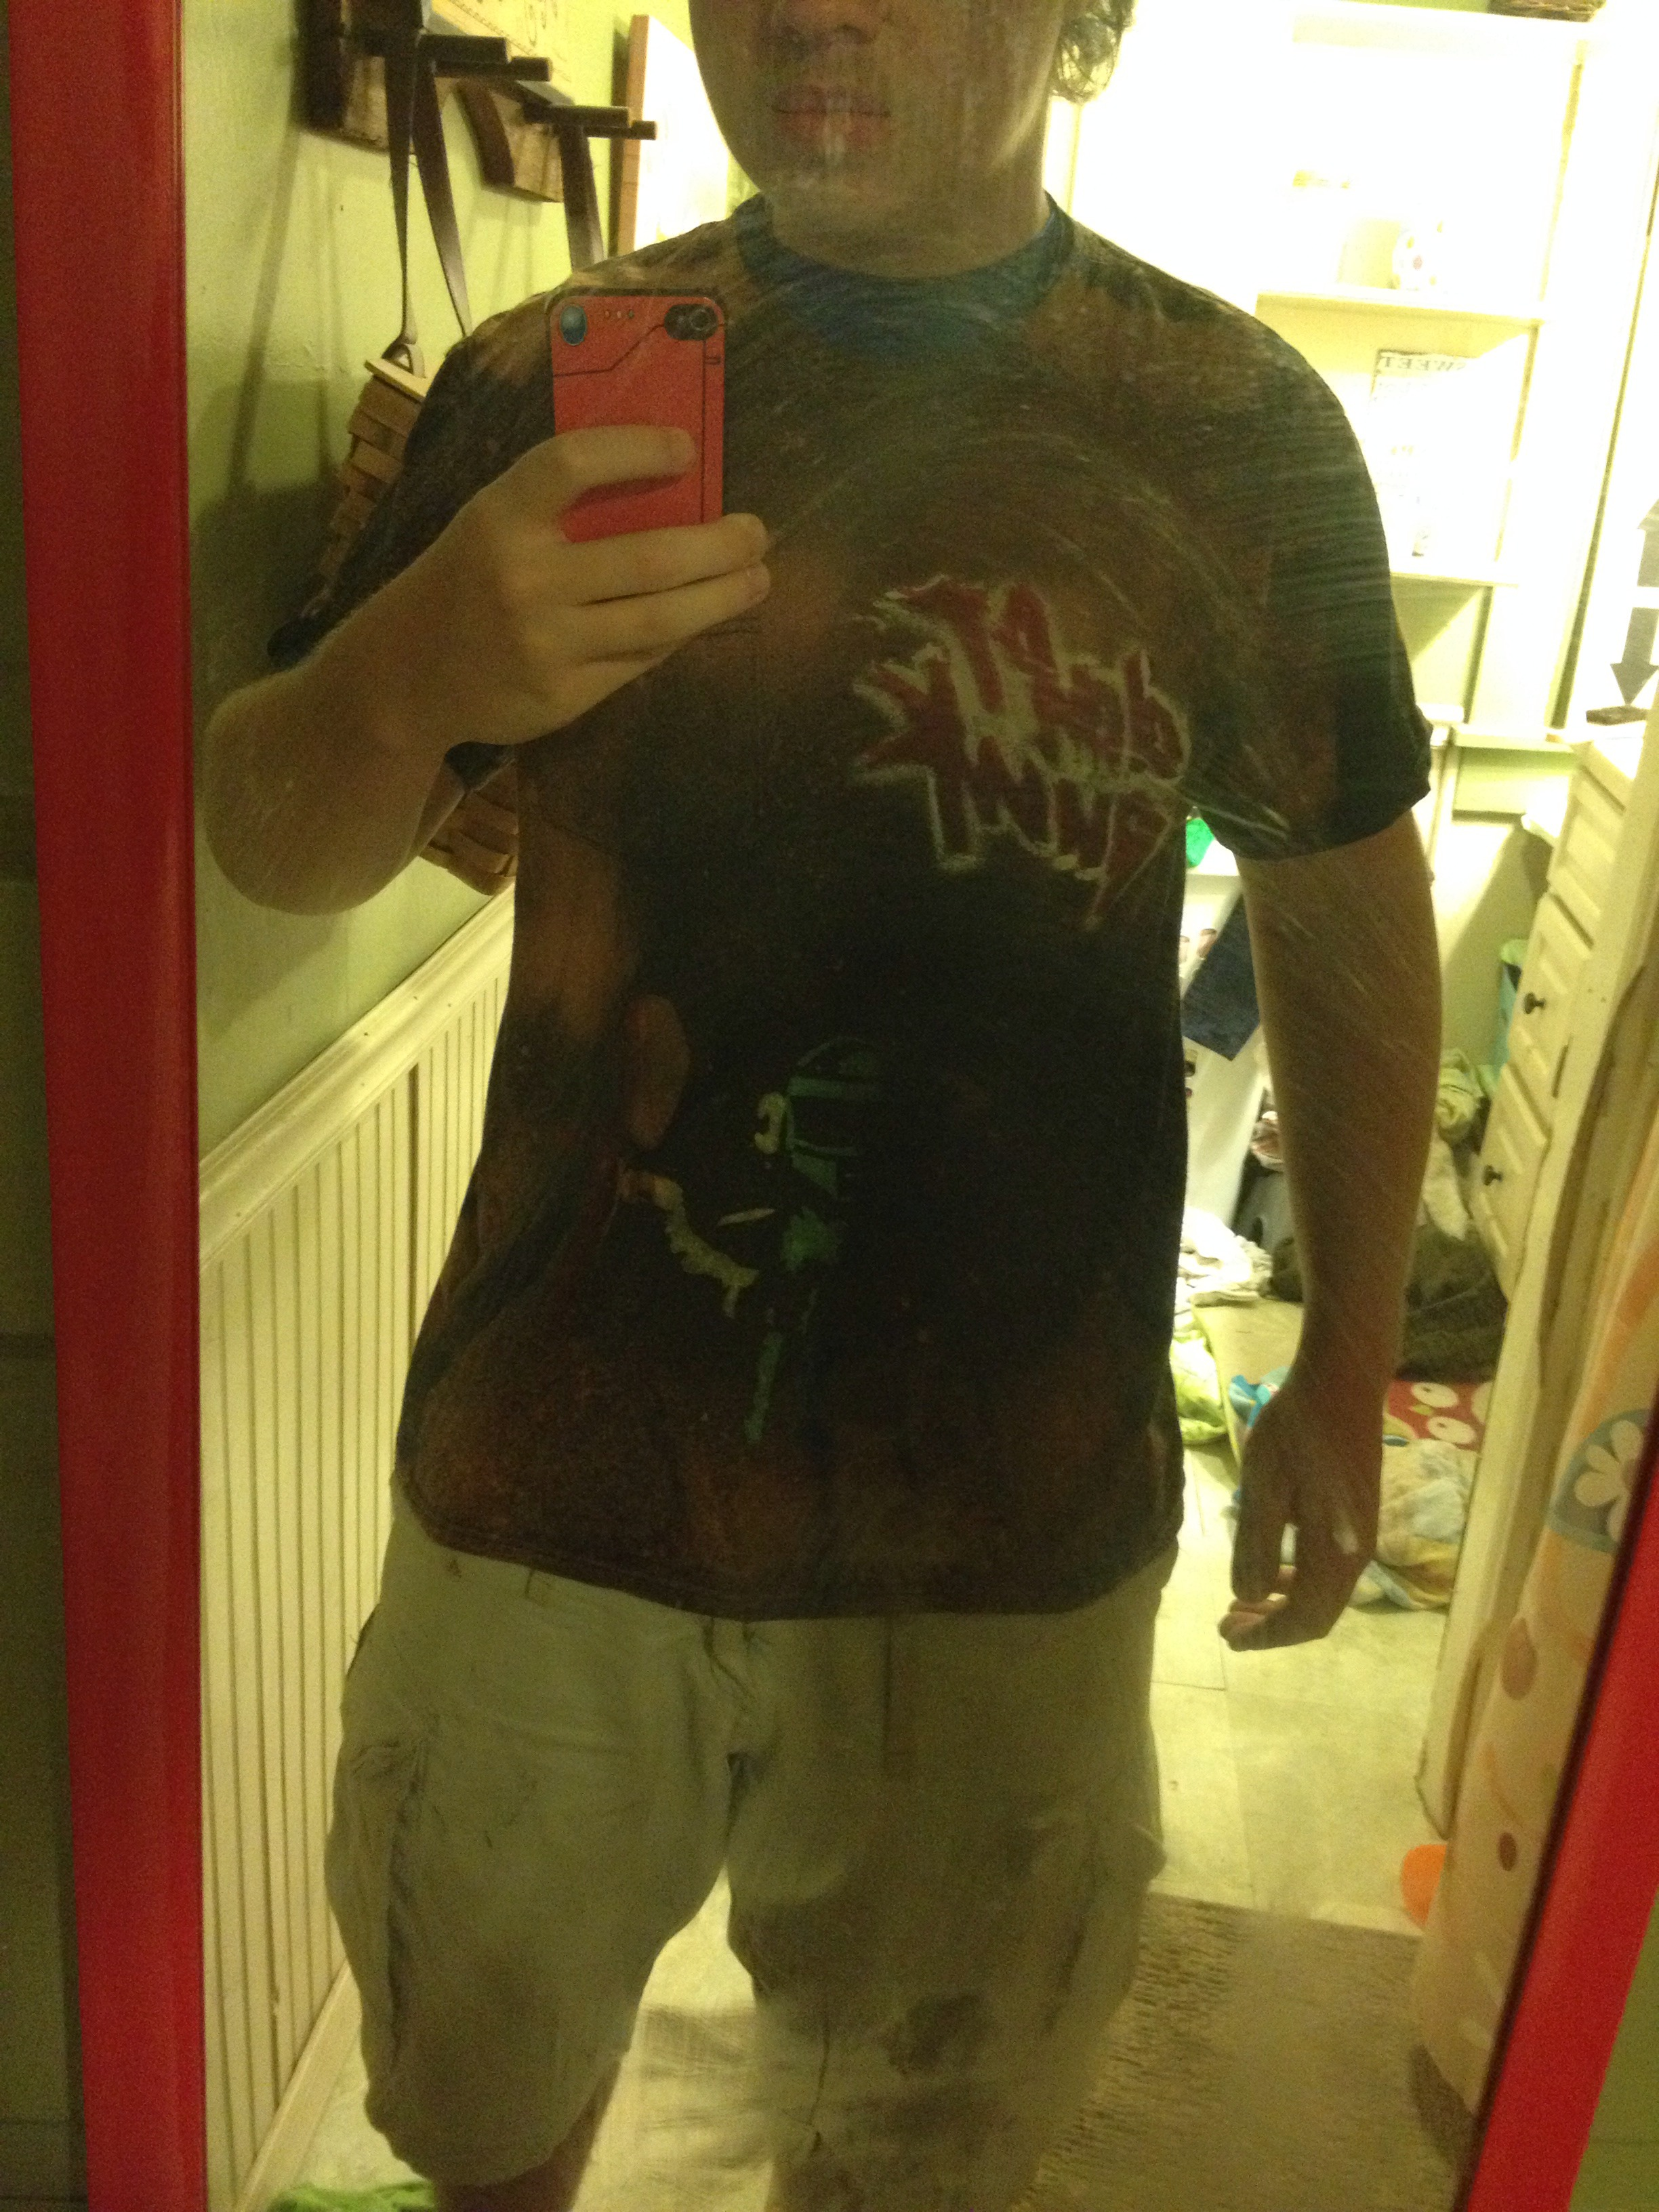 Picture of Bleach Dyed and Painted Tee Shirts